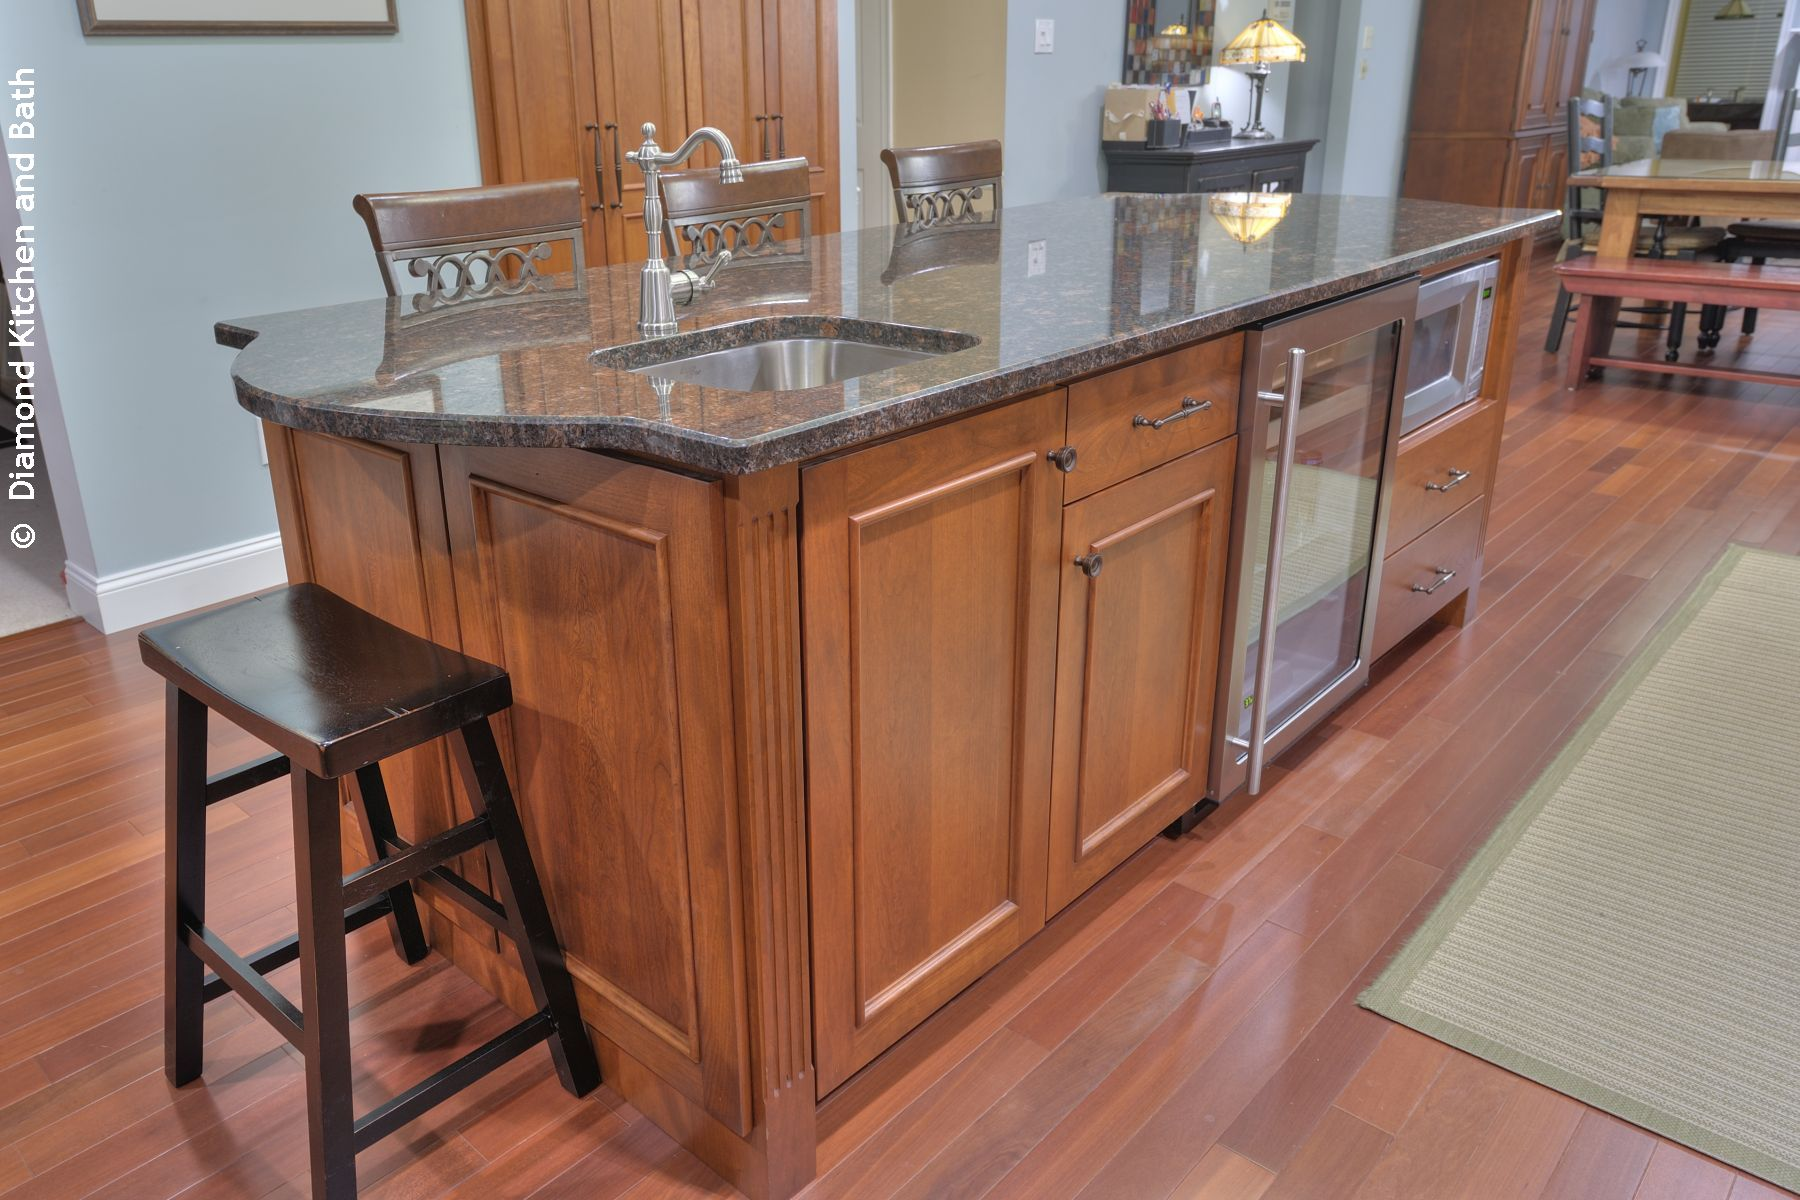 Kitchen Remodeling, Yardley, PA | 1800 x 1200 · 278 kB · jpeg | 1800 x 1200 · 278 kB · jpeg